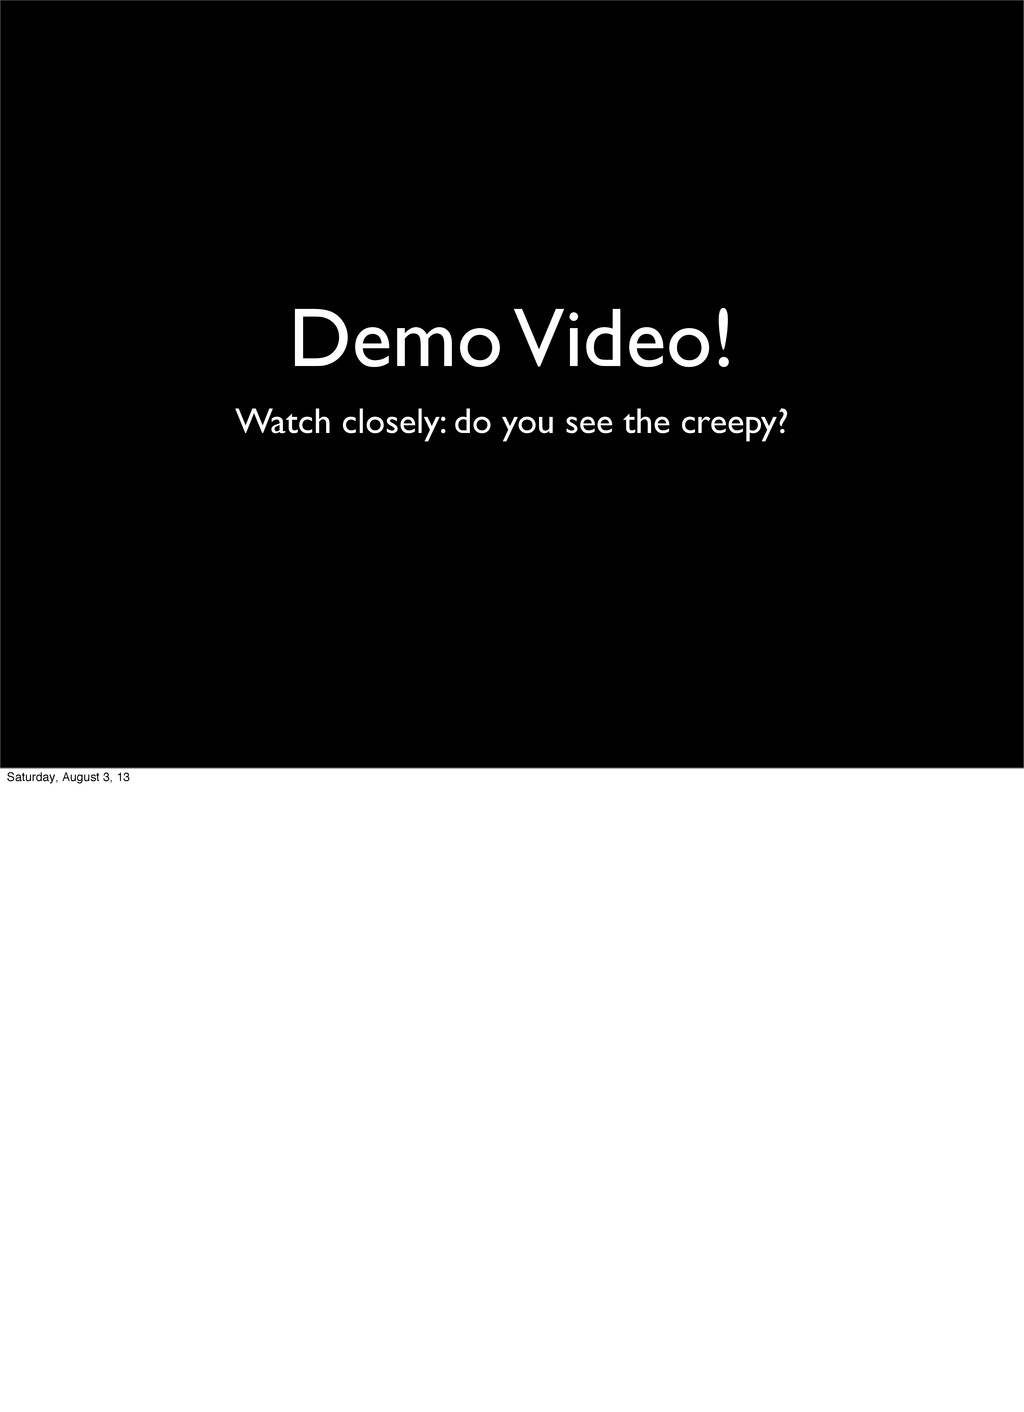 Demo Video! Watch closely: do you see the creep...